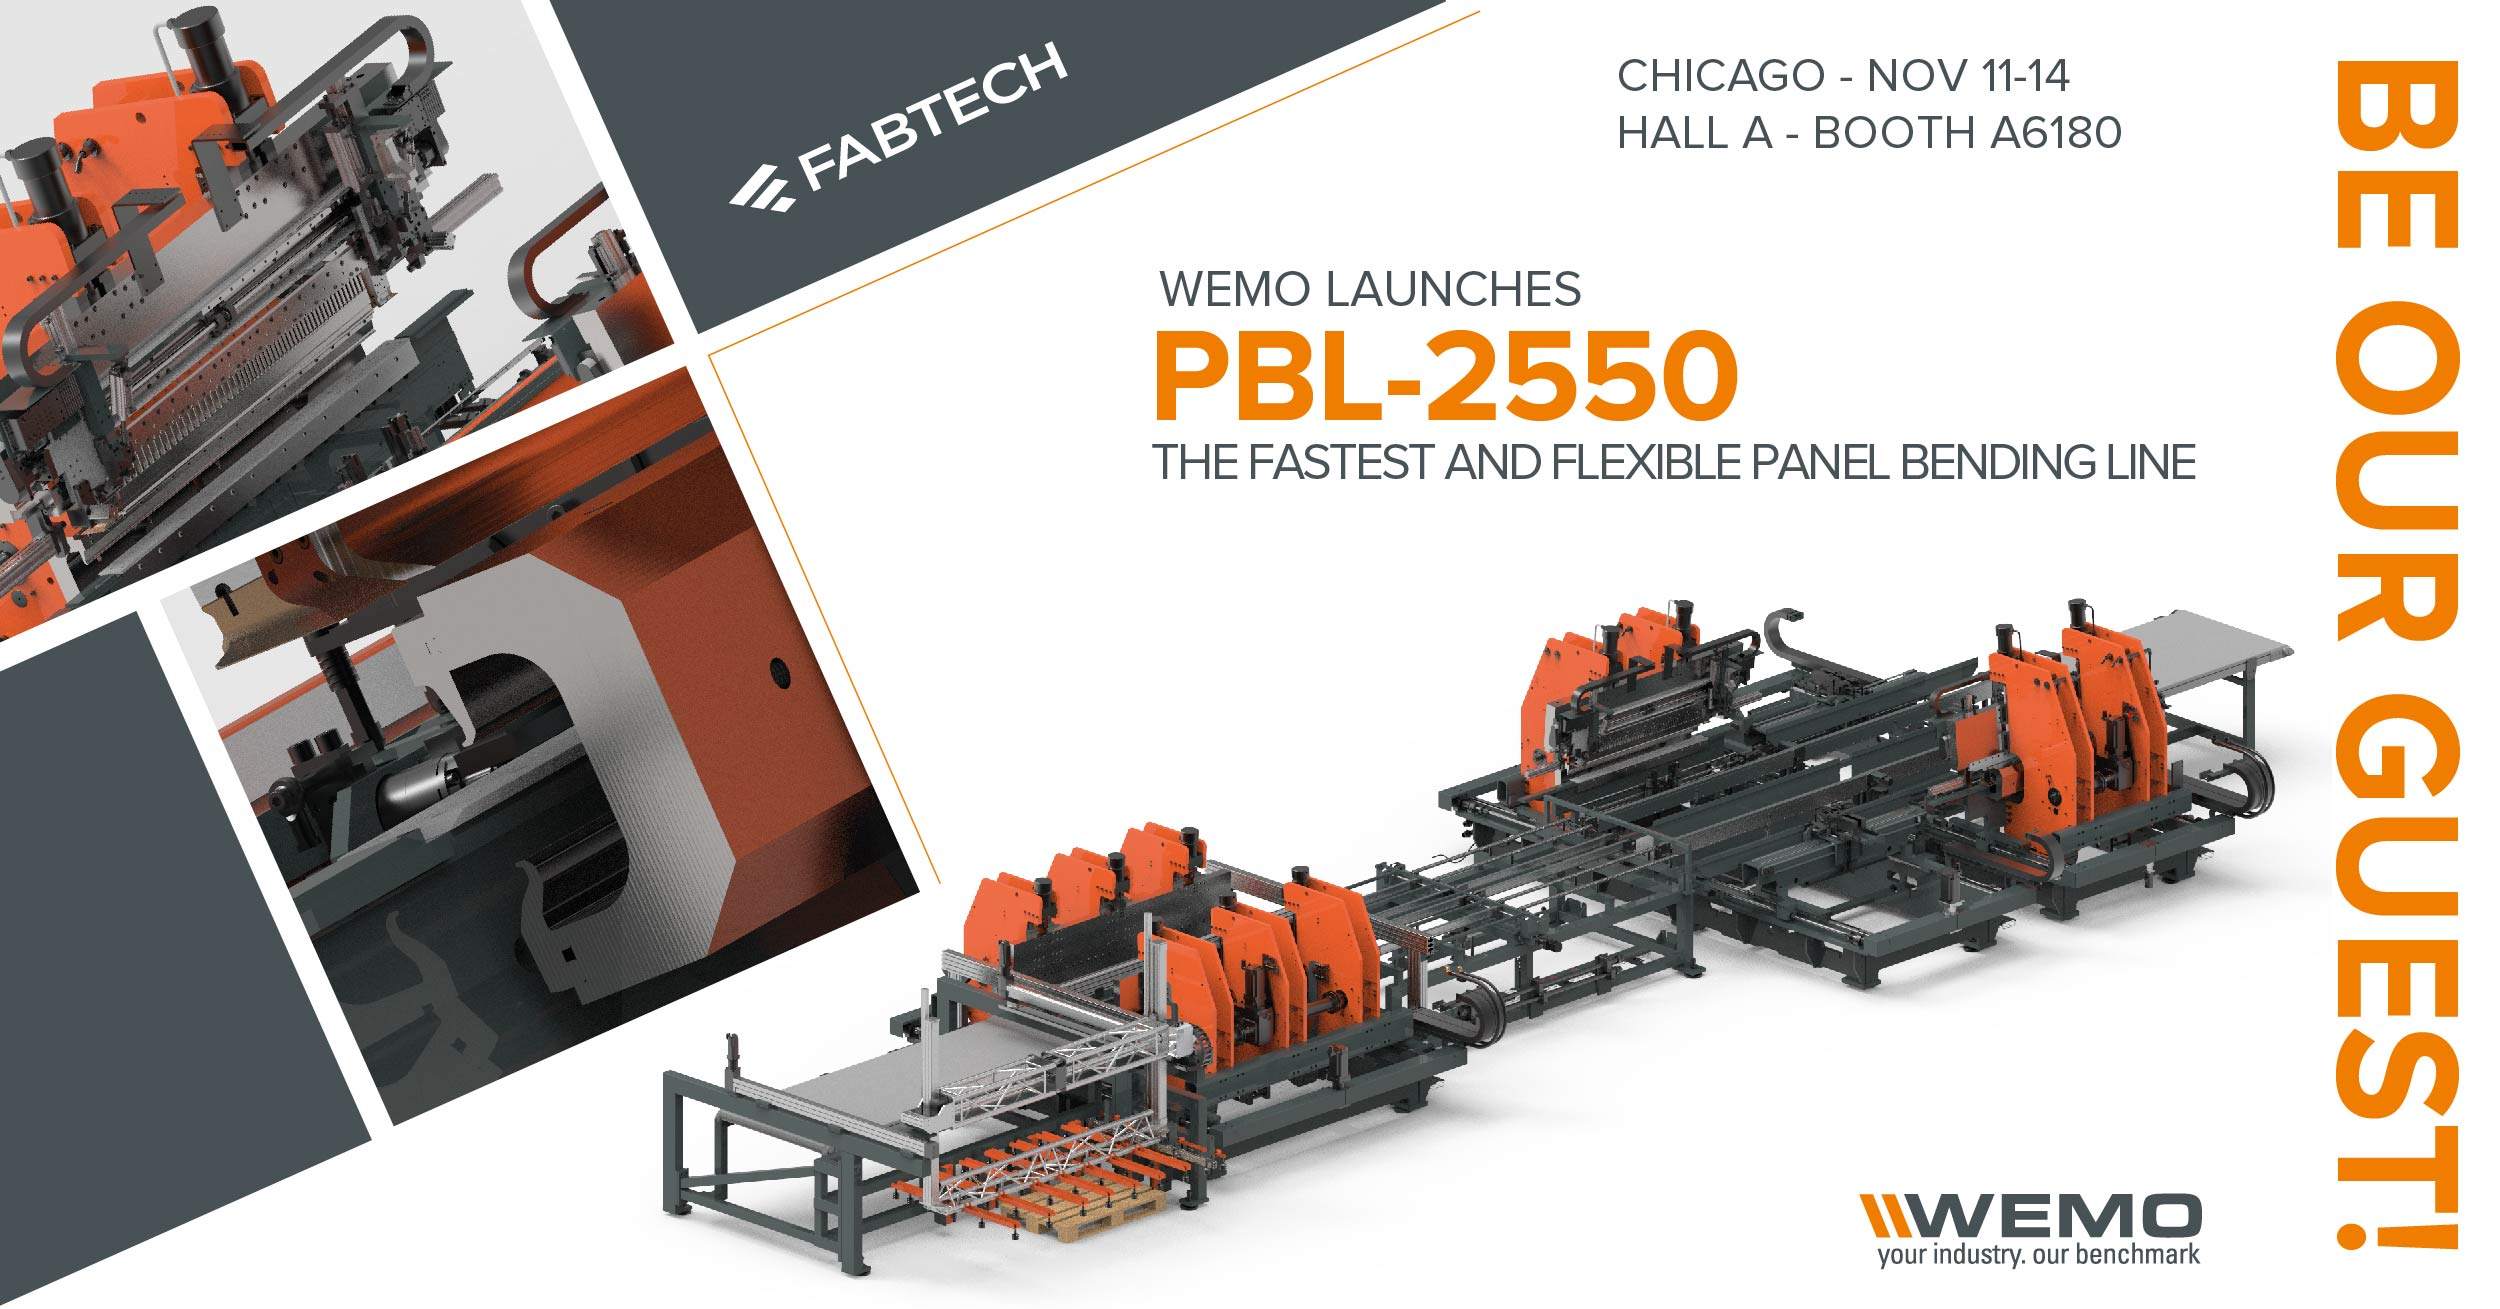 wemo-at-the-fabtech-2019.jpg